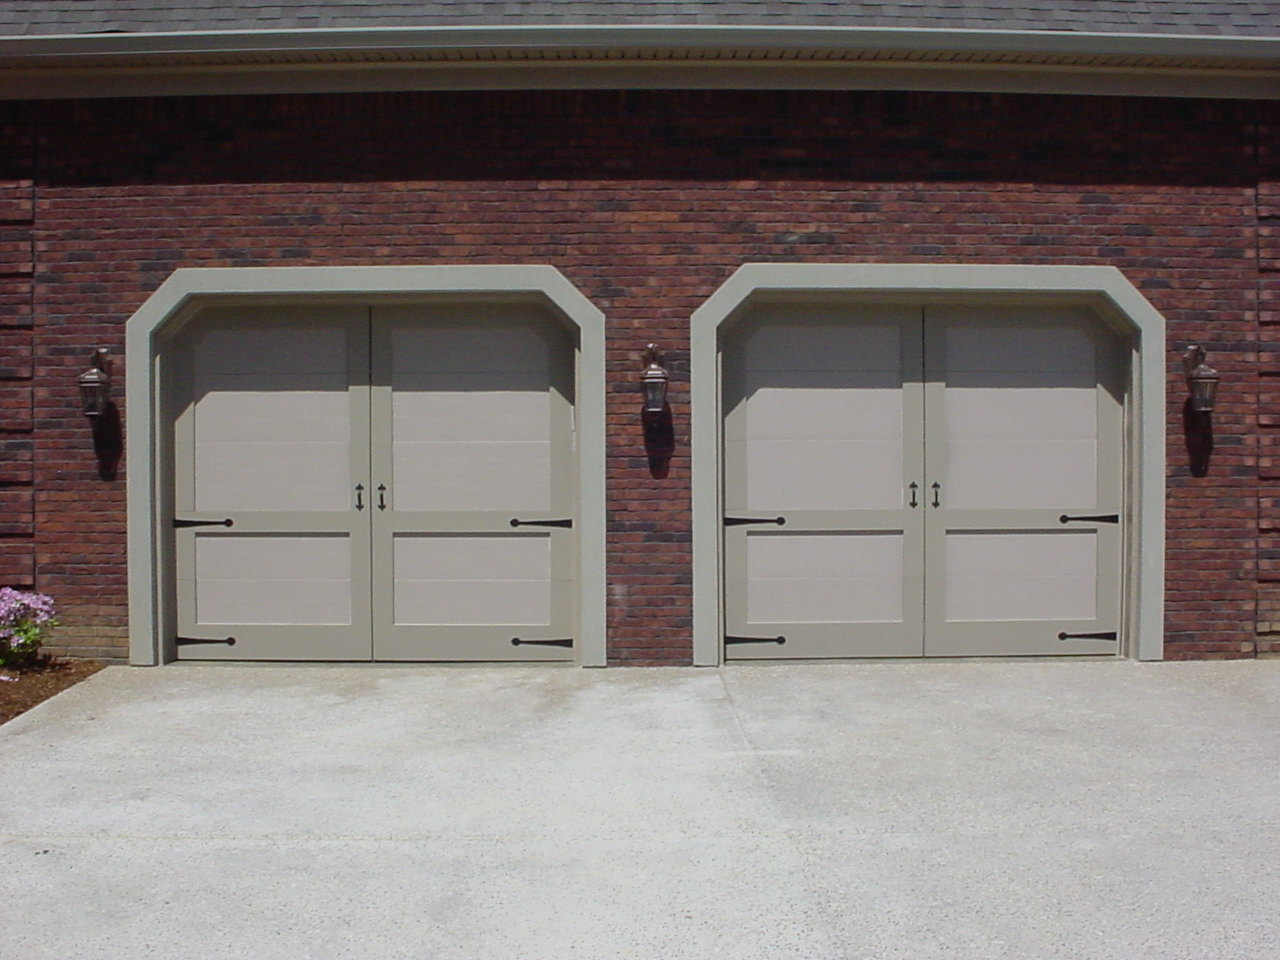 Garage doors by cunningham door window clifton design with barn style corners rubansaba